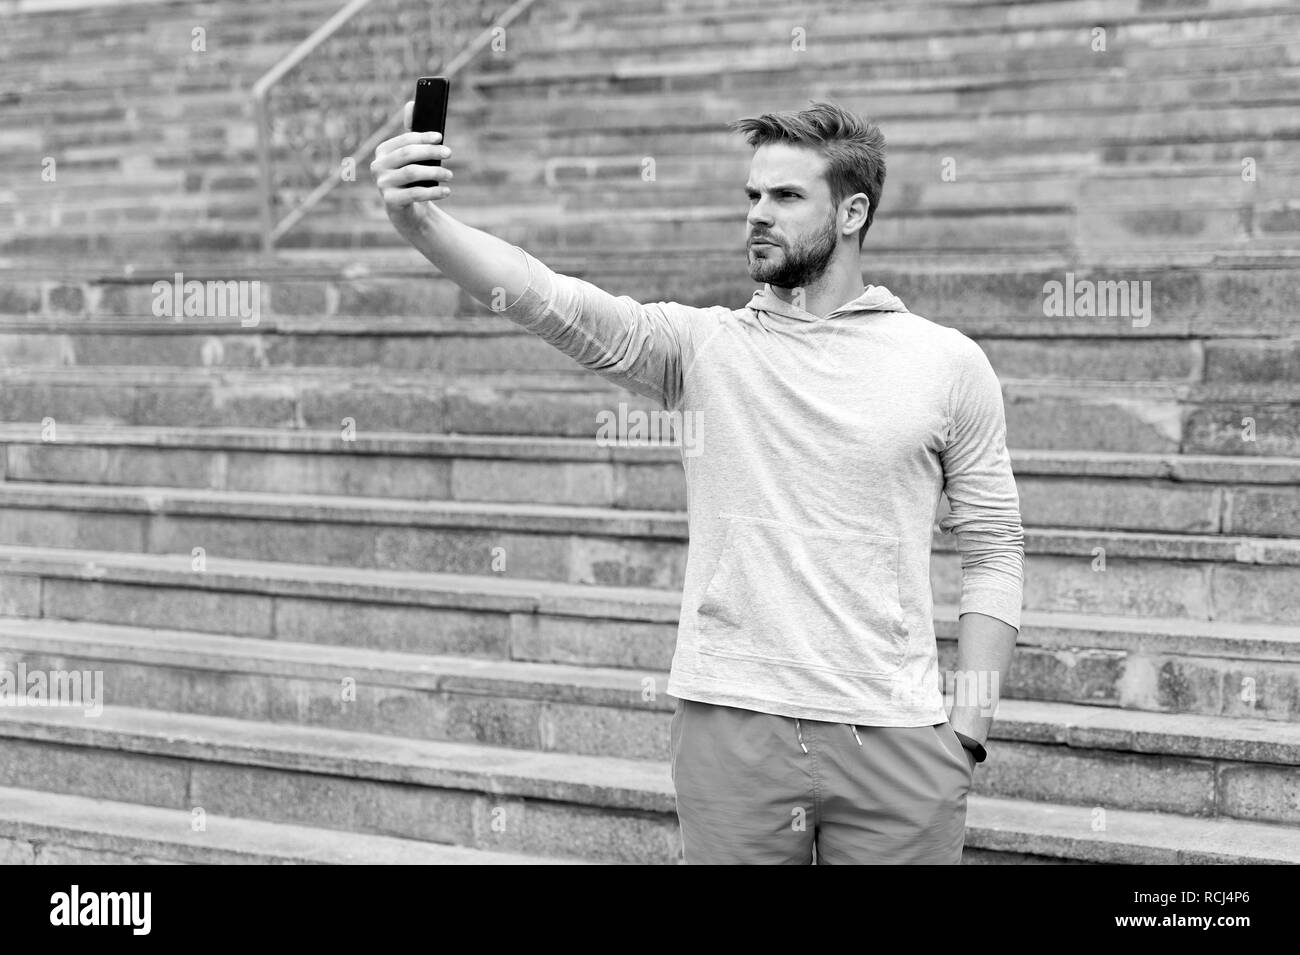 Selfie concept. Handsome man take selfie with smartphone. Athletic guy use mobile phone for selfie. Selfie before training. - Stock Image